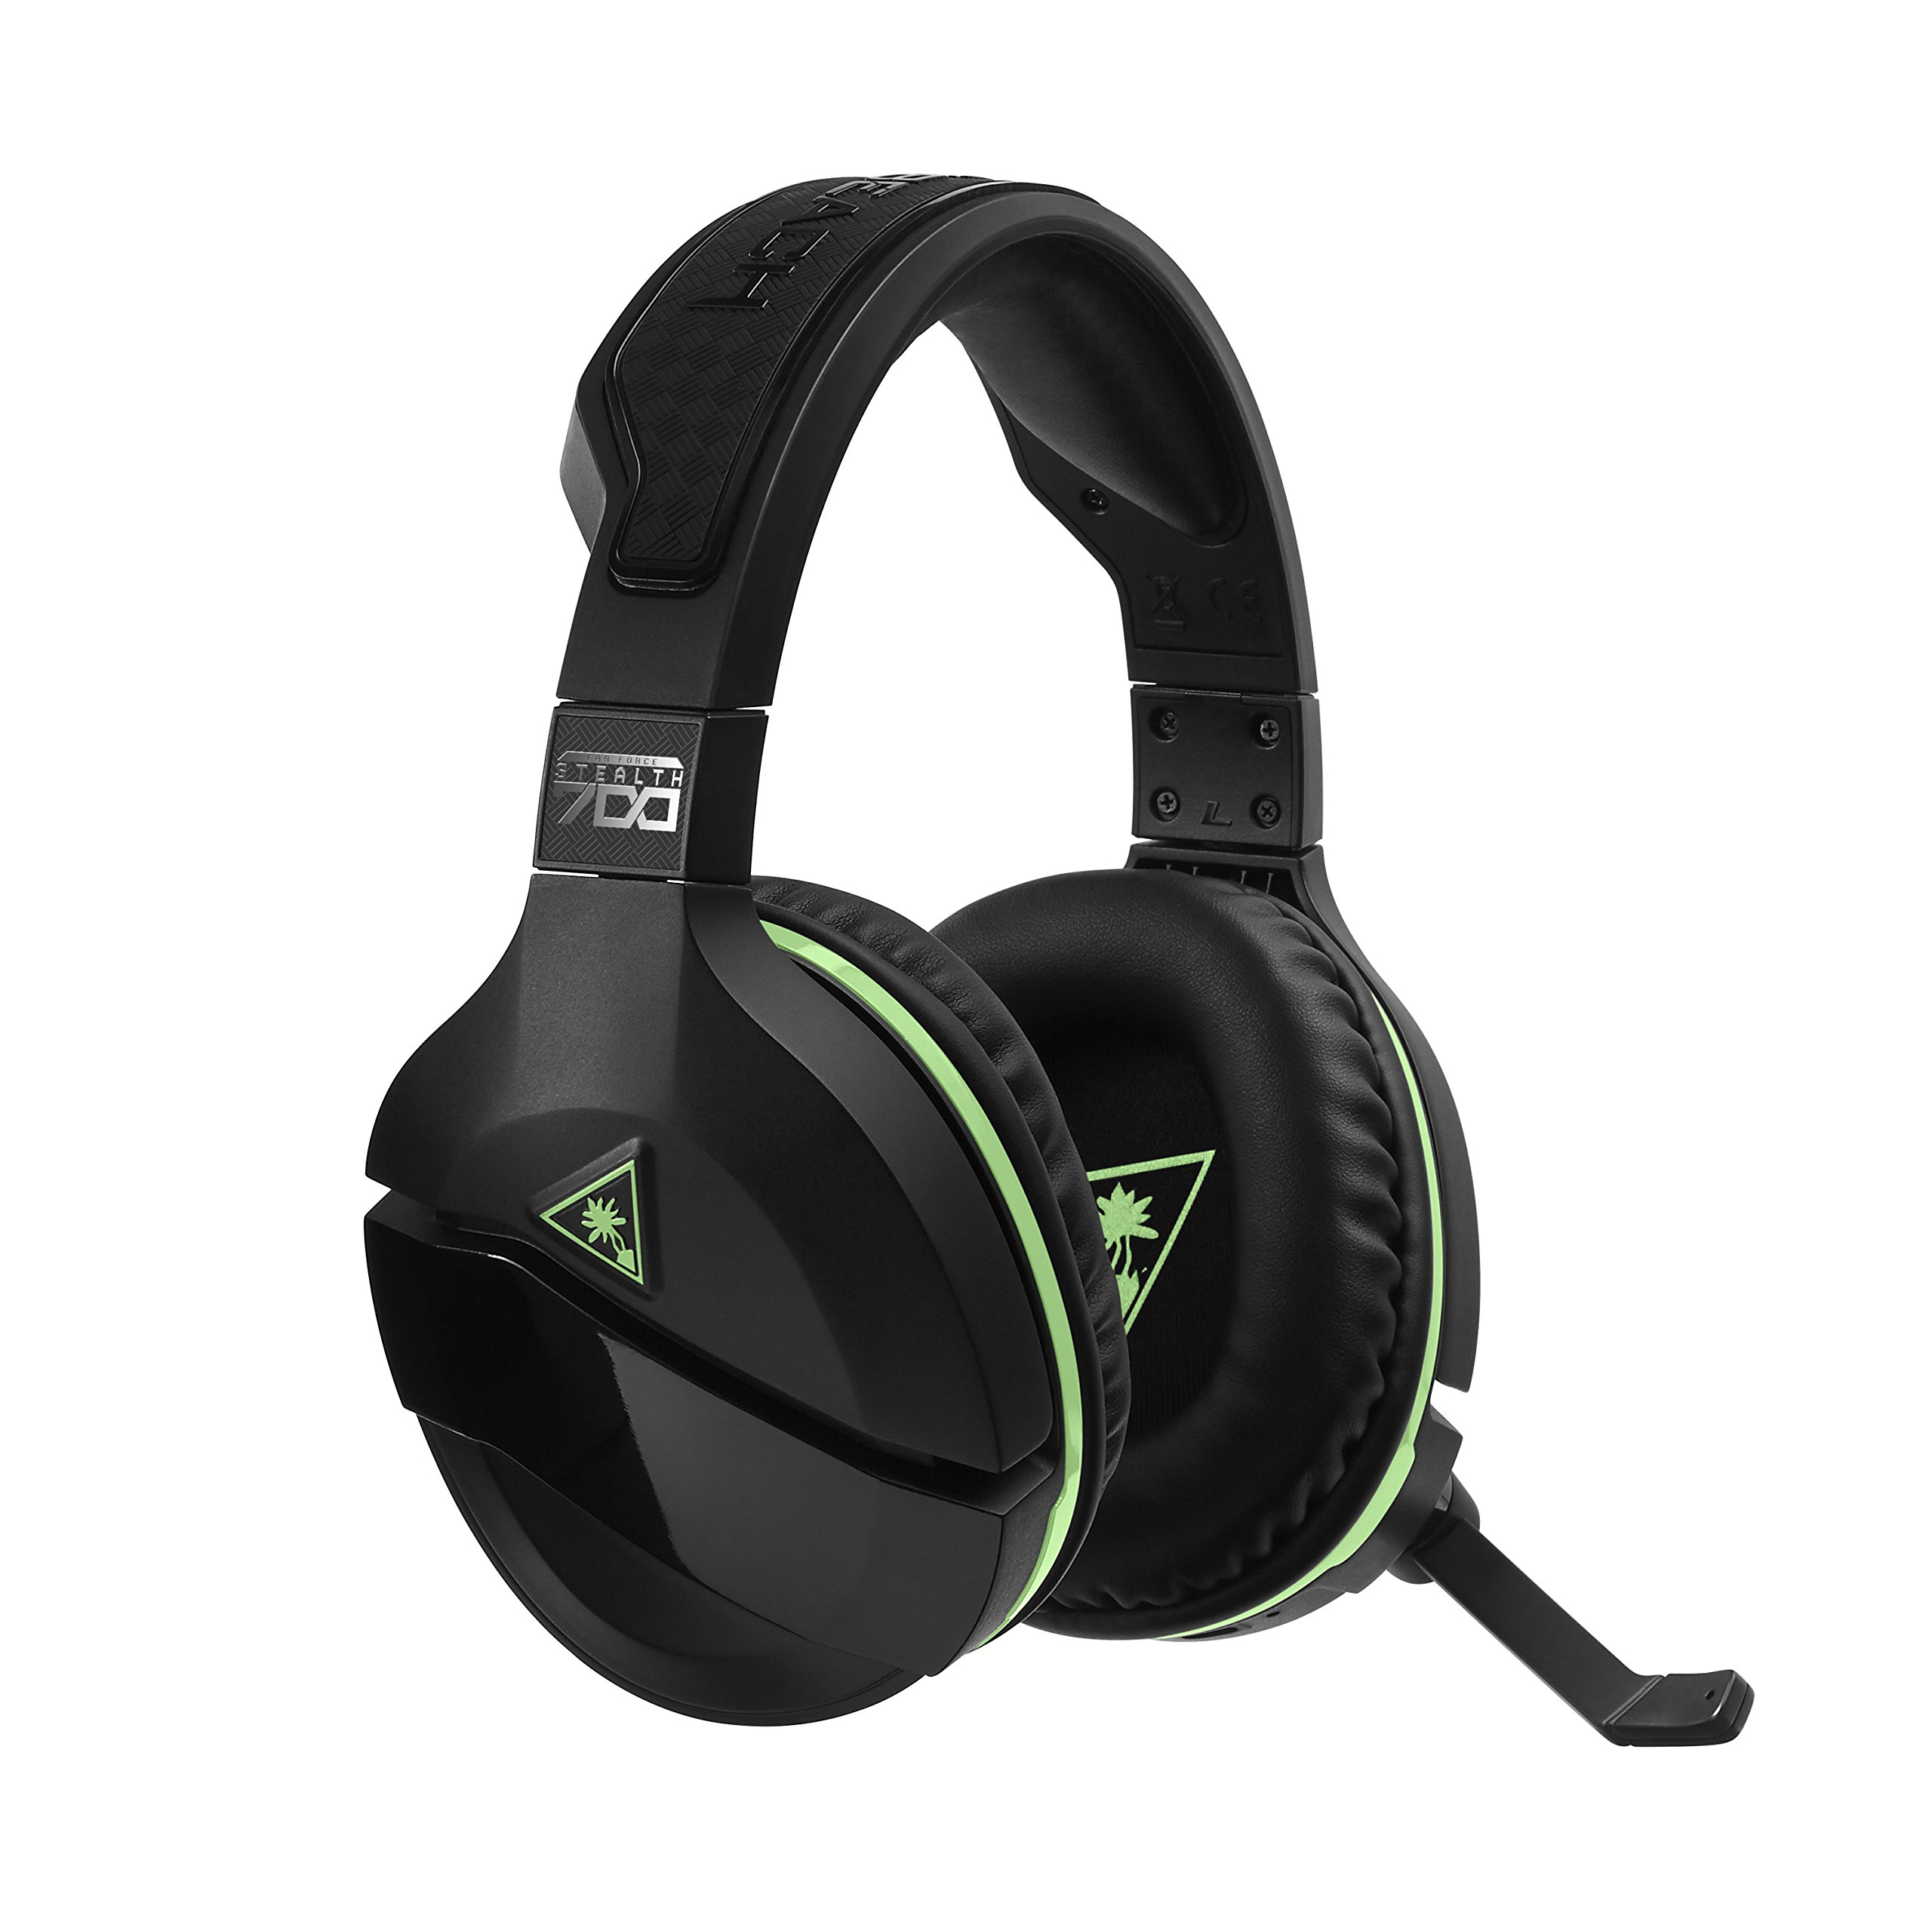 Turtle Beach Stealth 700 Premium Wireless Surround Sound Gaming Headset for Xbox One by Turtle Beach